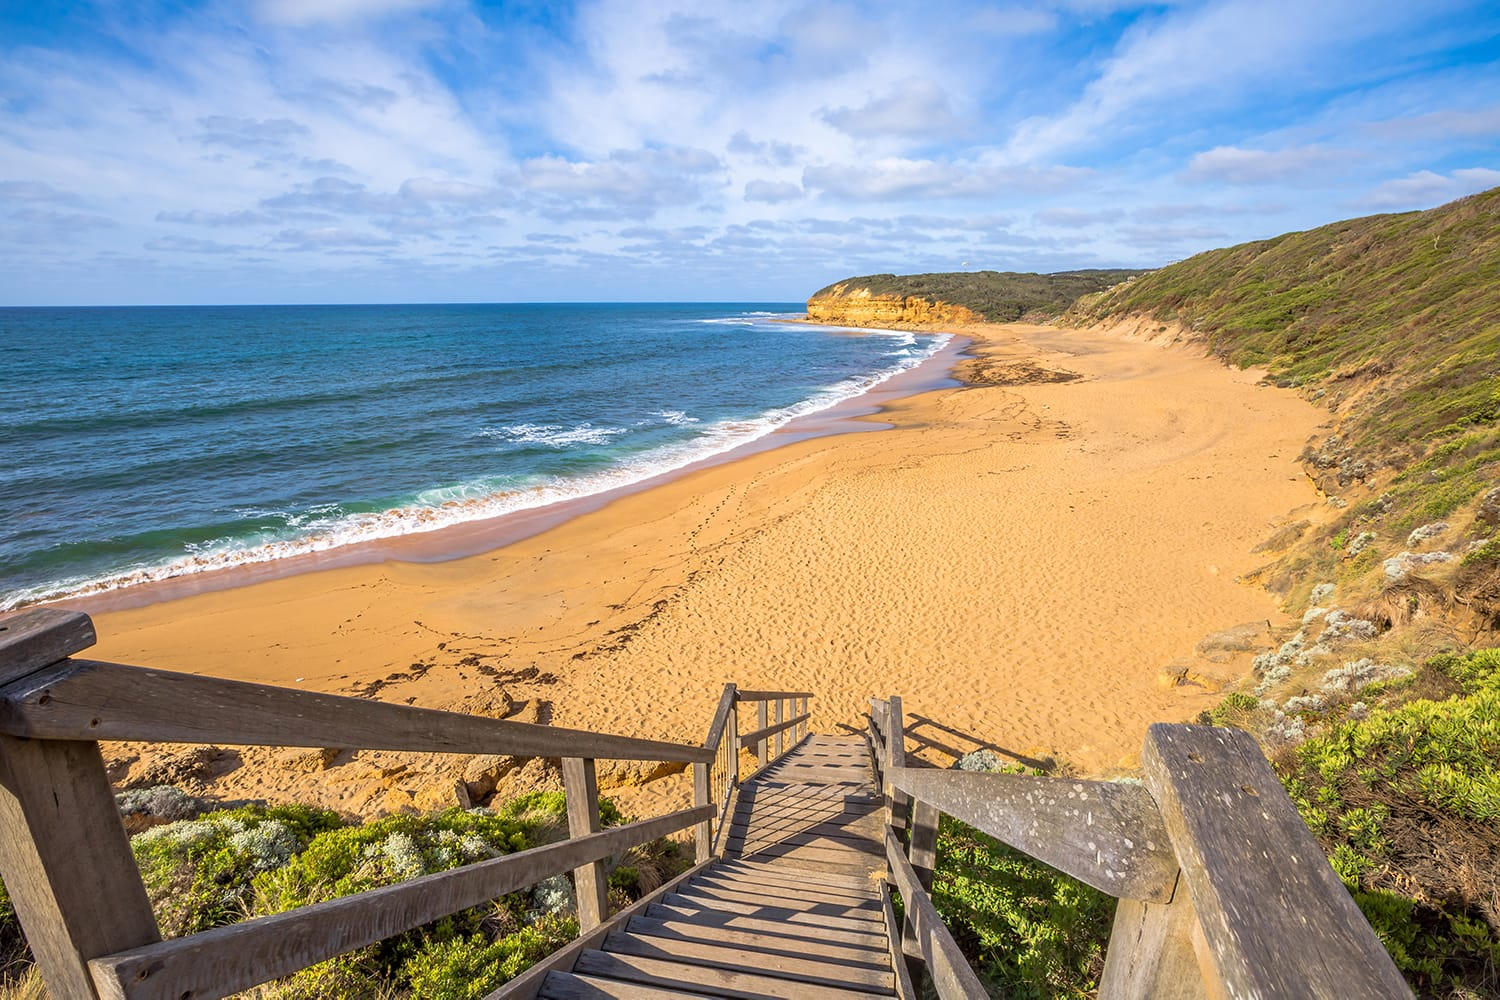 The legendary Bells Beach of the movie Point Break, near Torquay, gateway to the Surf Coast of Victoria, Australia